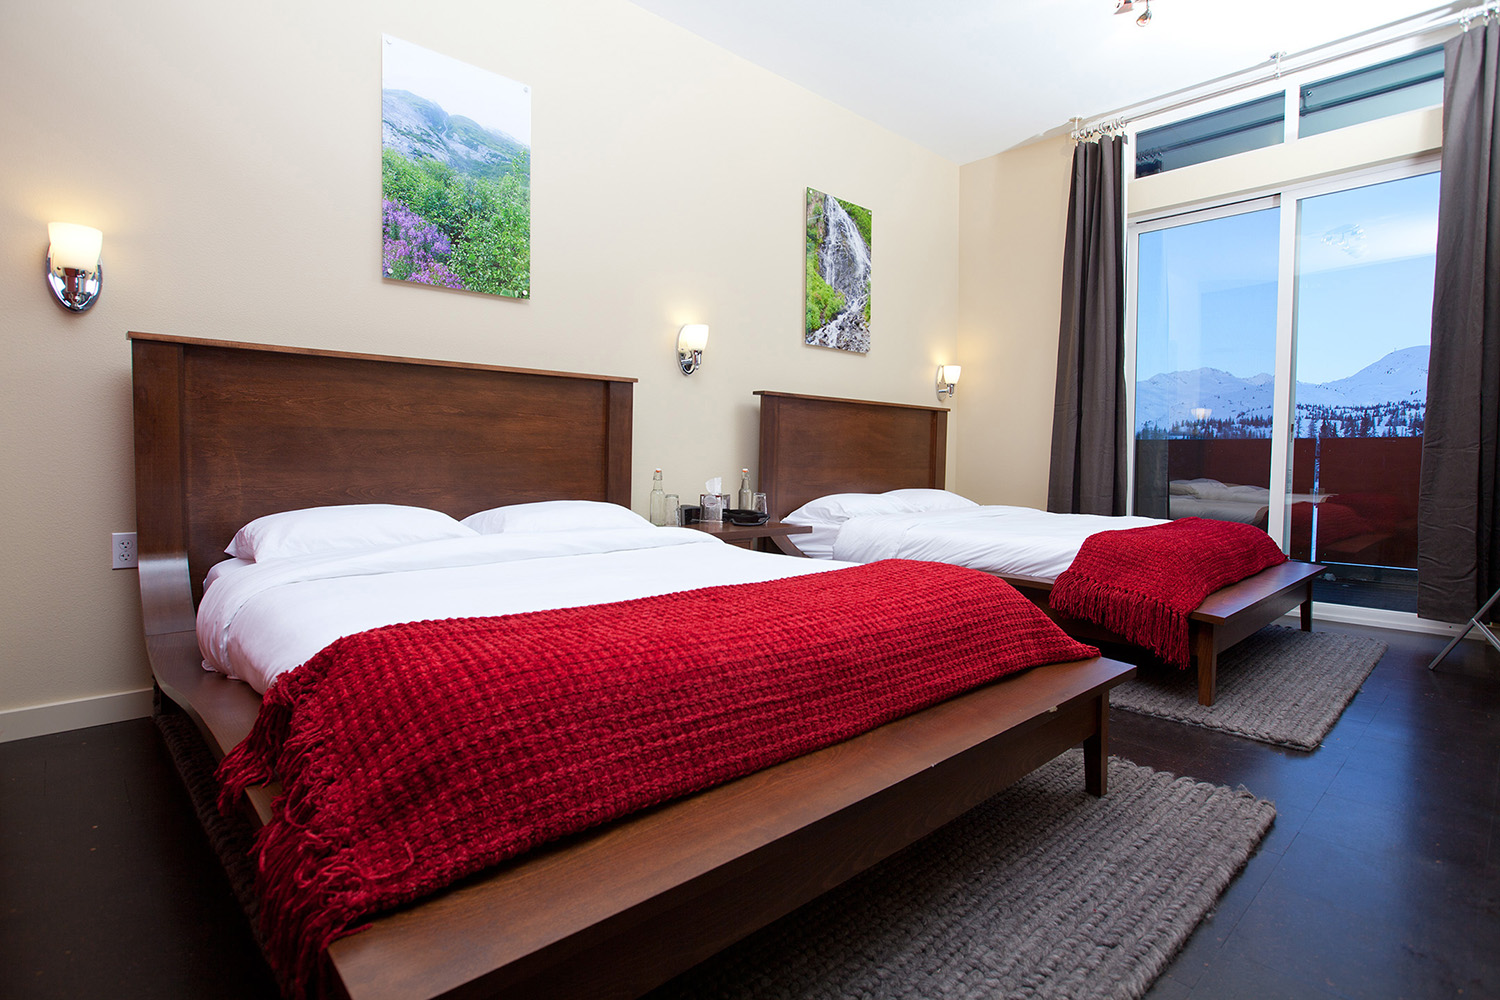 Relax in your luxury room at Tsaina Lodge after a day of heli skiing.